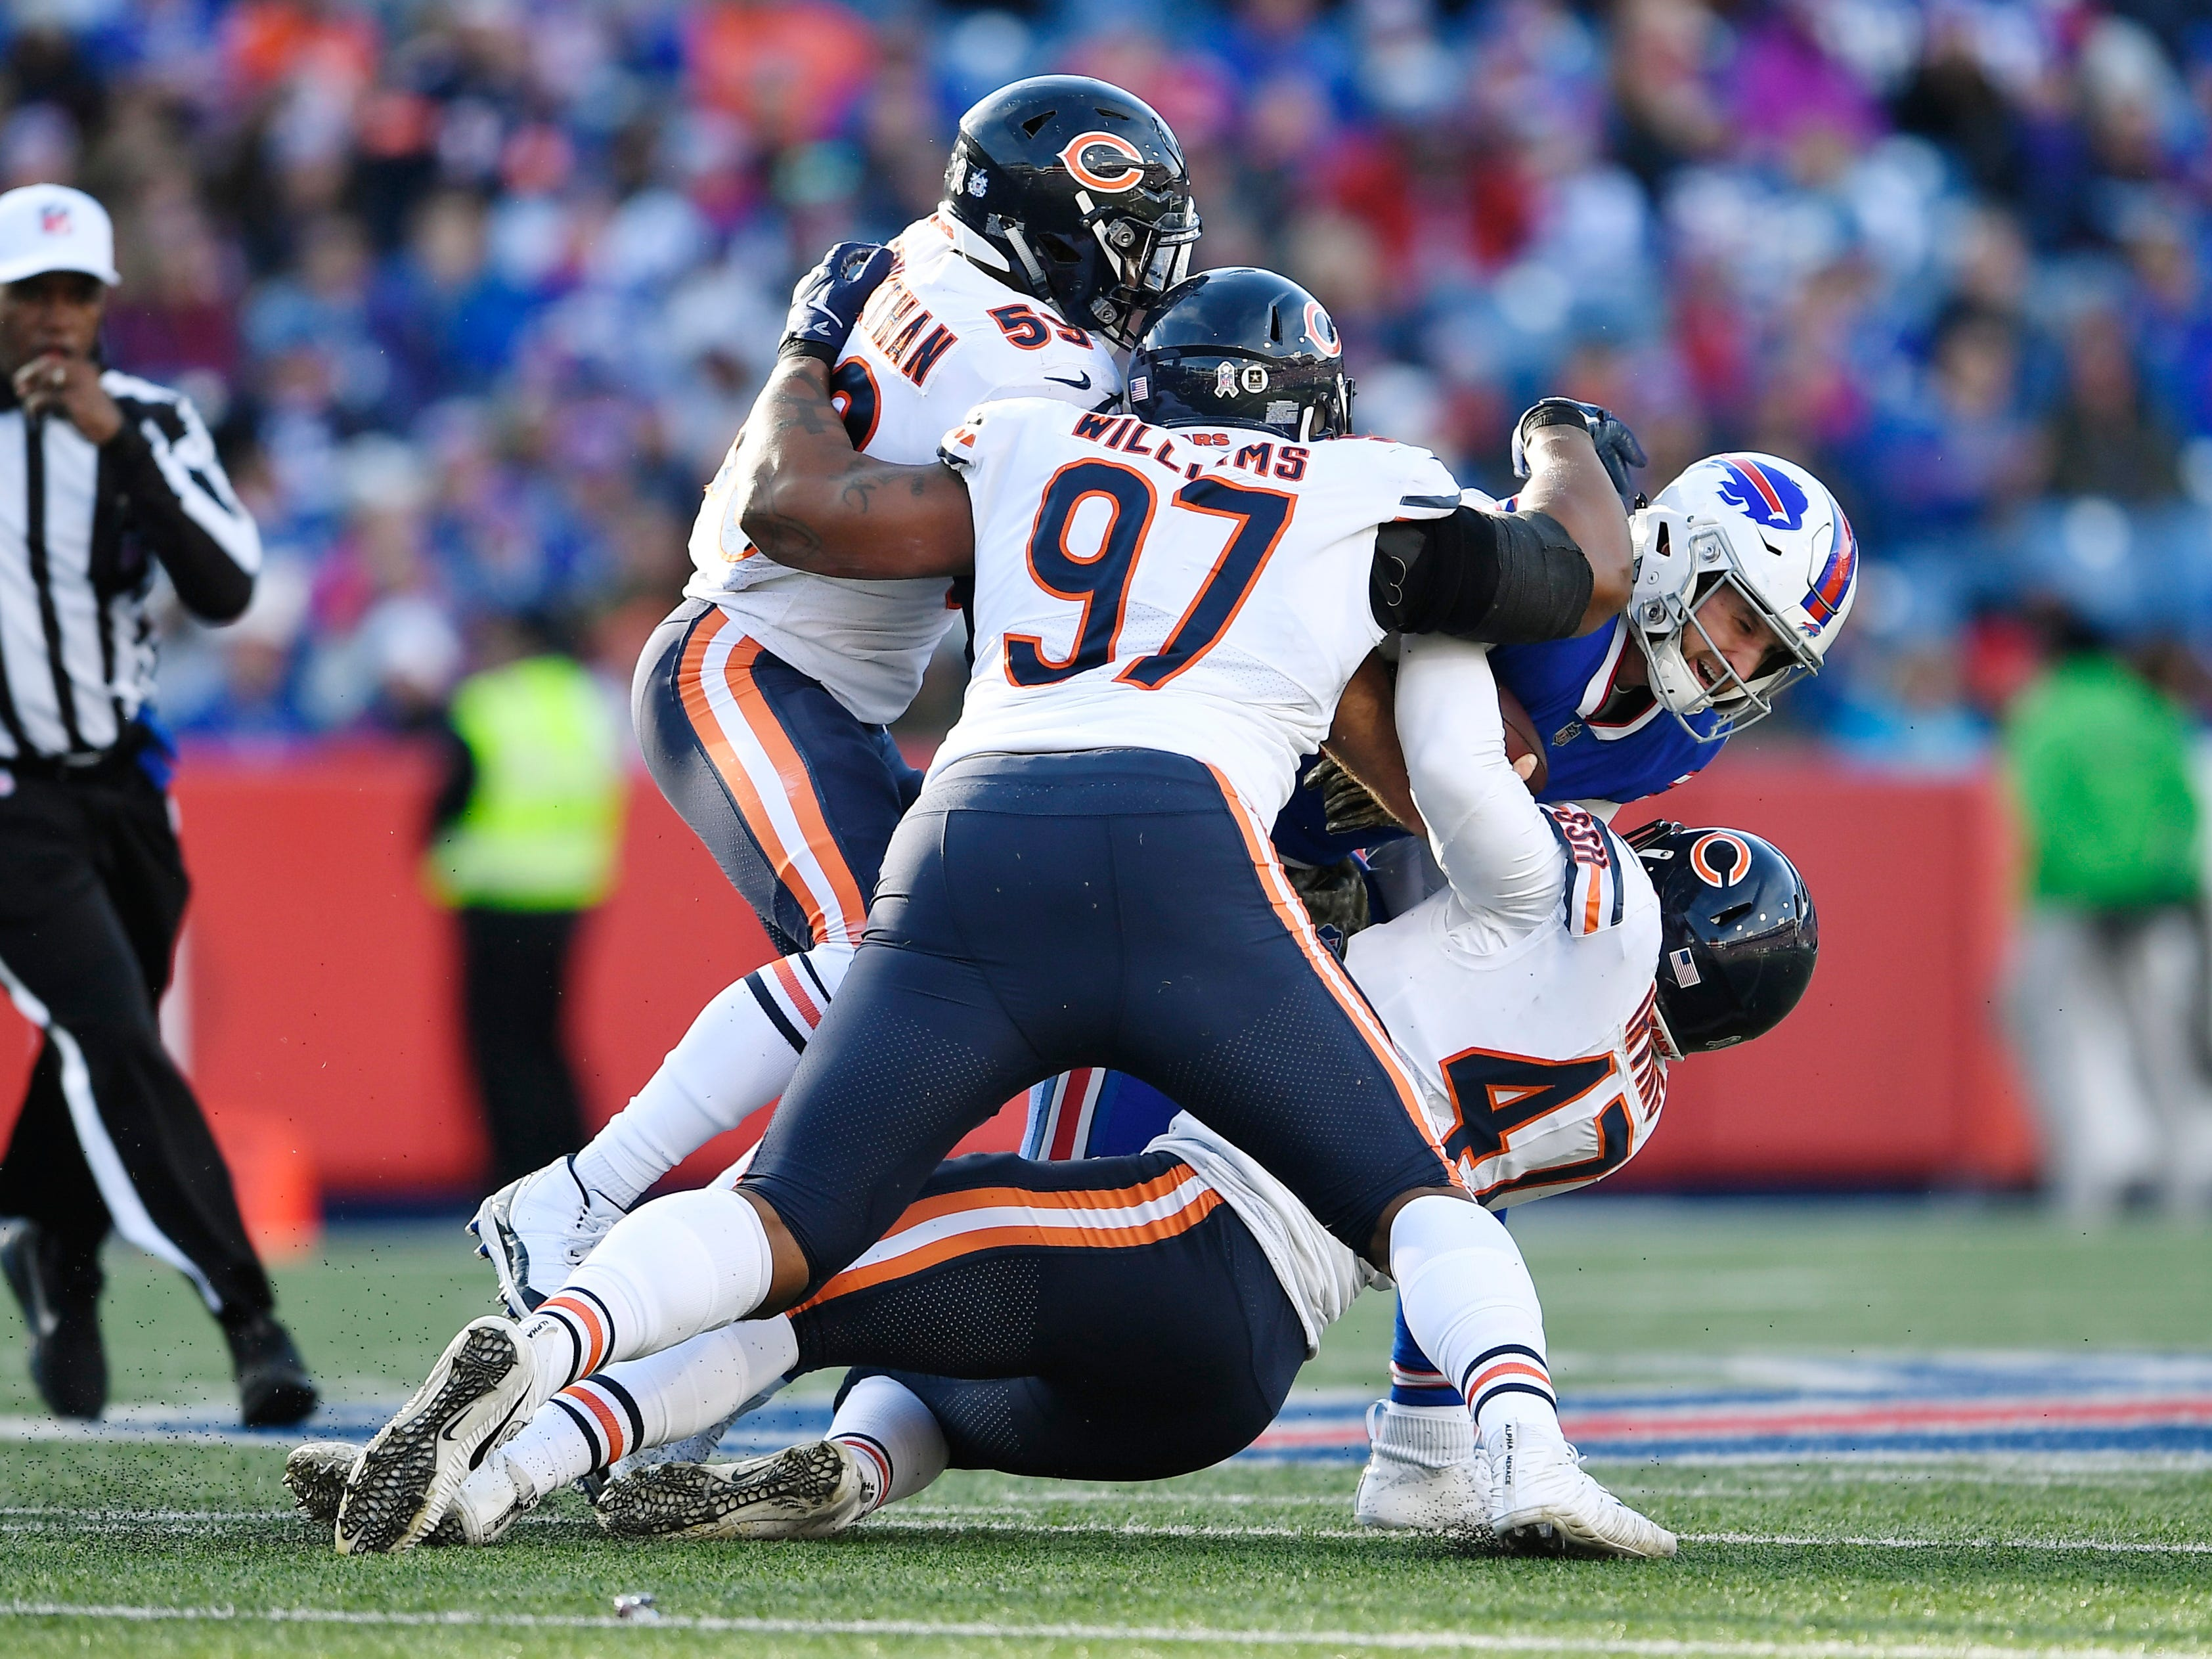 Chicago Bears defenders, led by Nick Williams (97), swallow up Buffalo Bills quarterback Nathan Peterman during the second half.